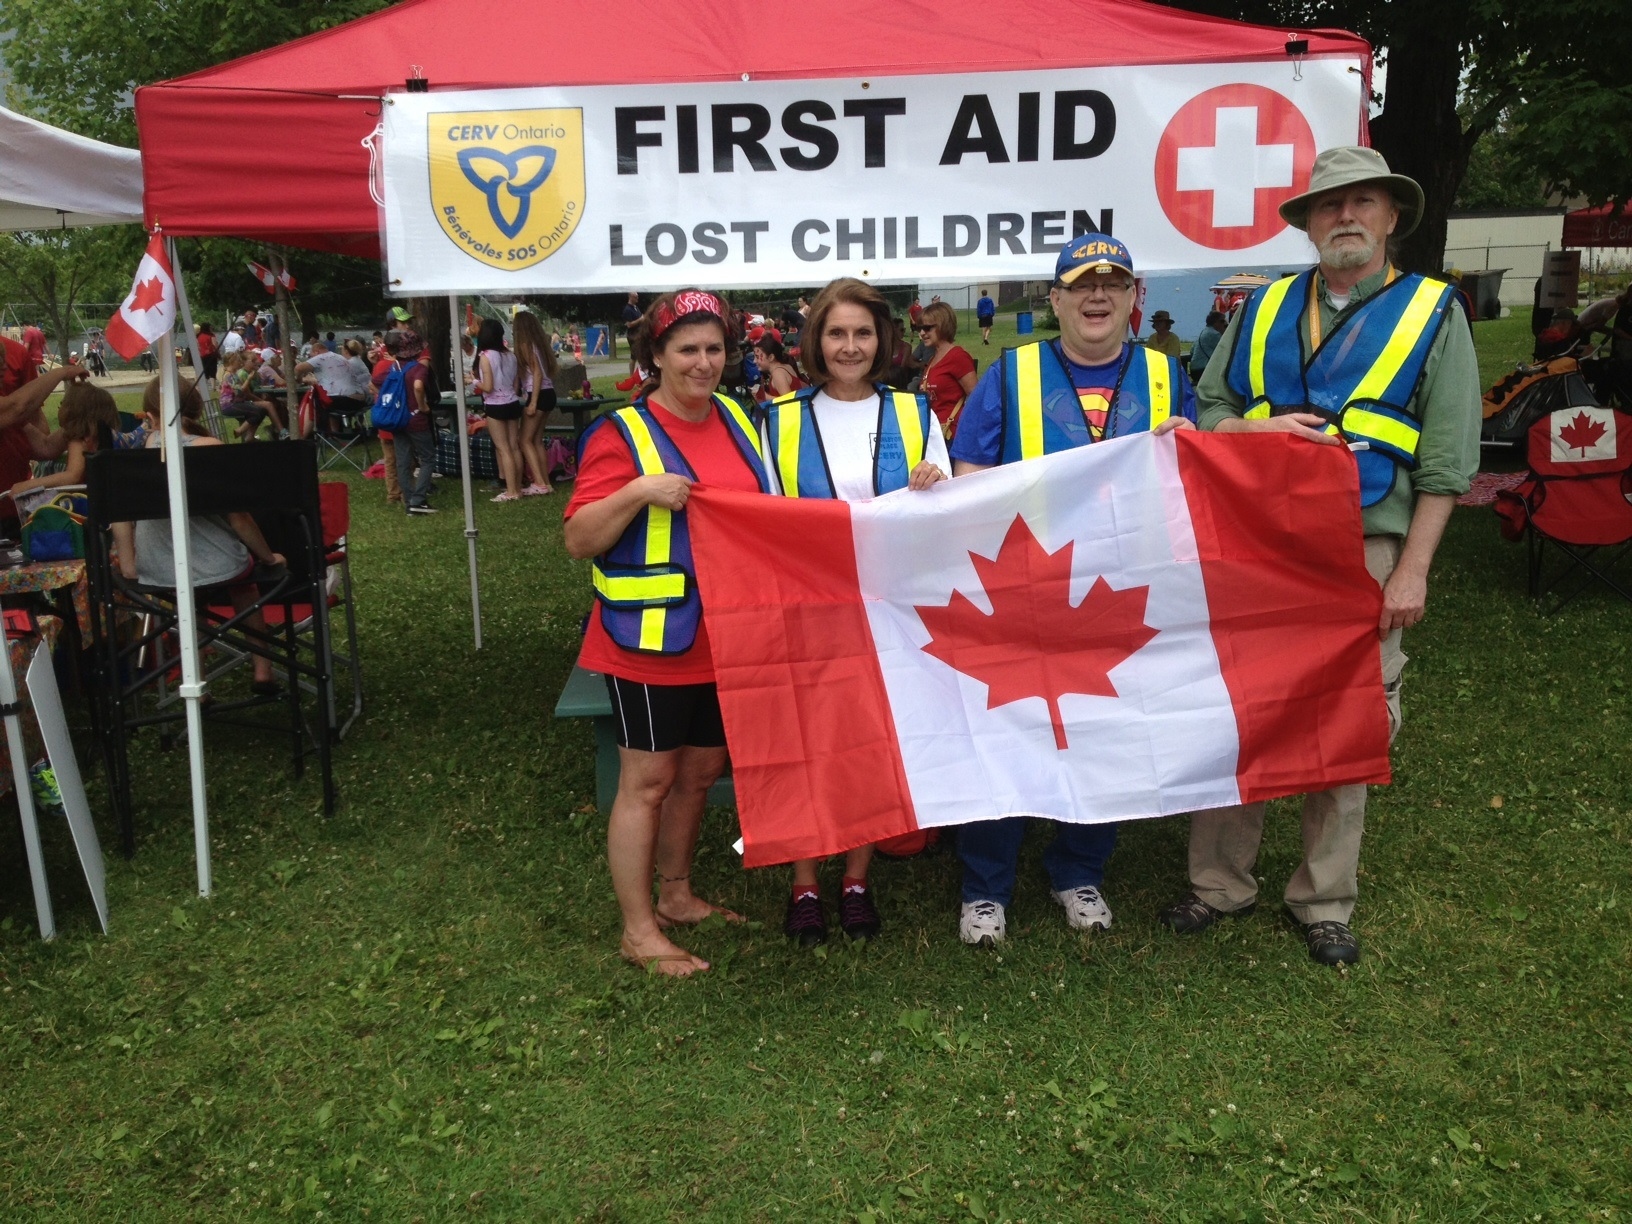 Image of CERV volunteers on Canada Day